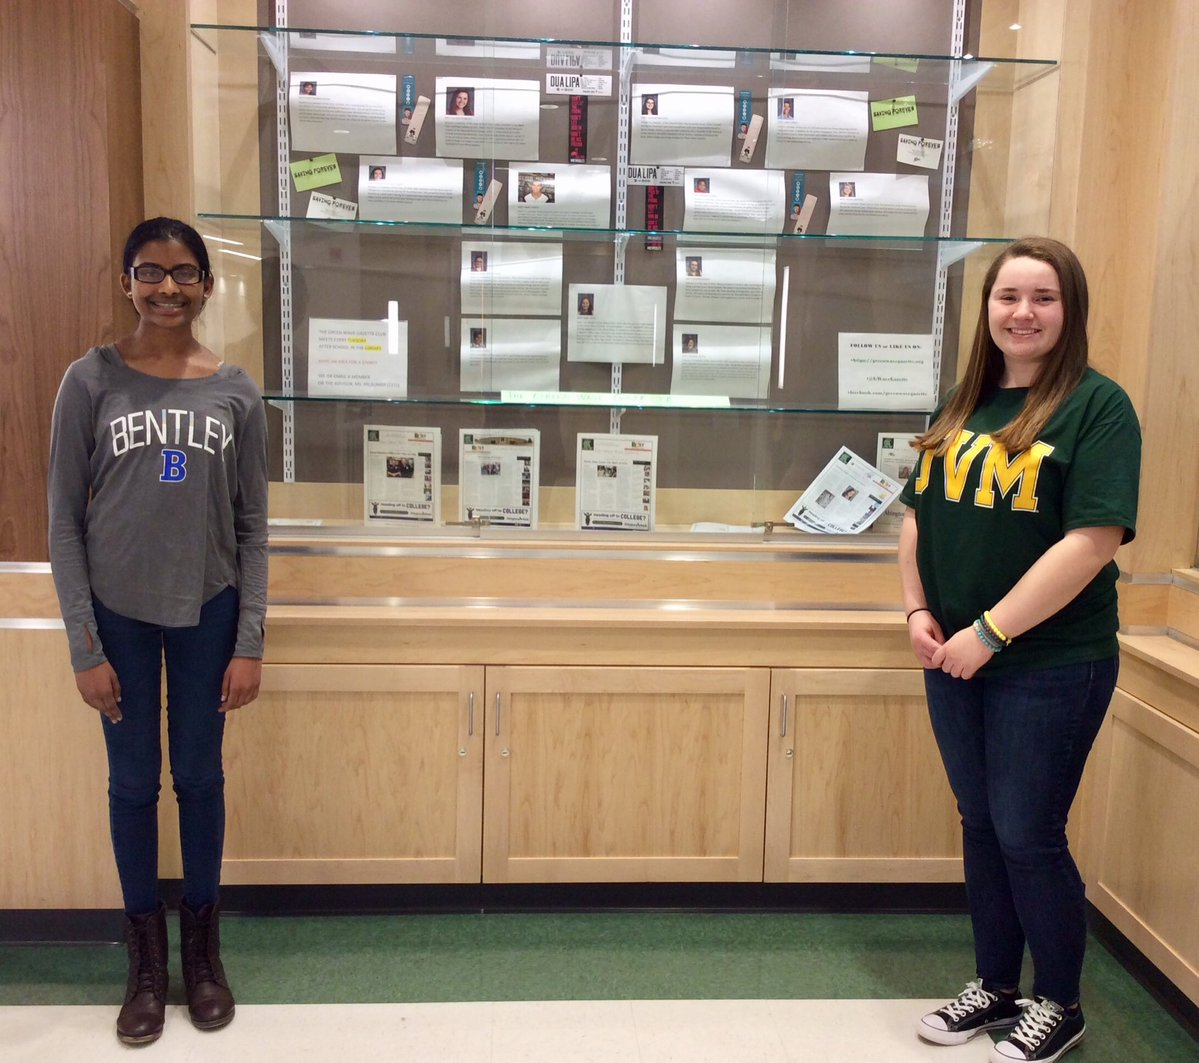 Nivetha Aravindan and Allison Dennehy in front of the Green Wave Gazette display